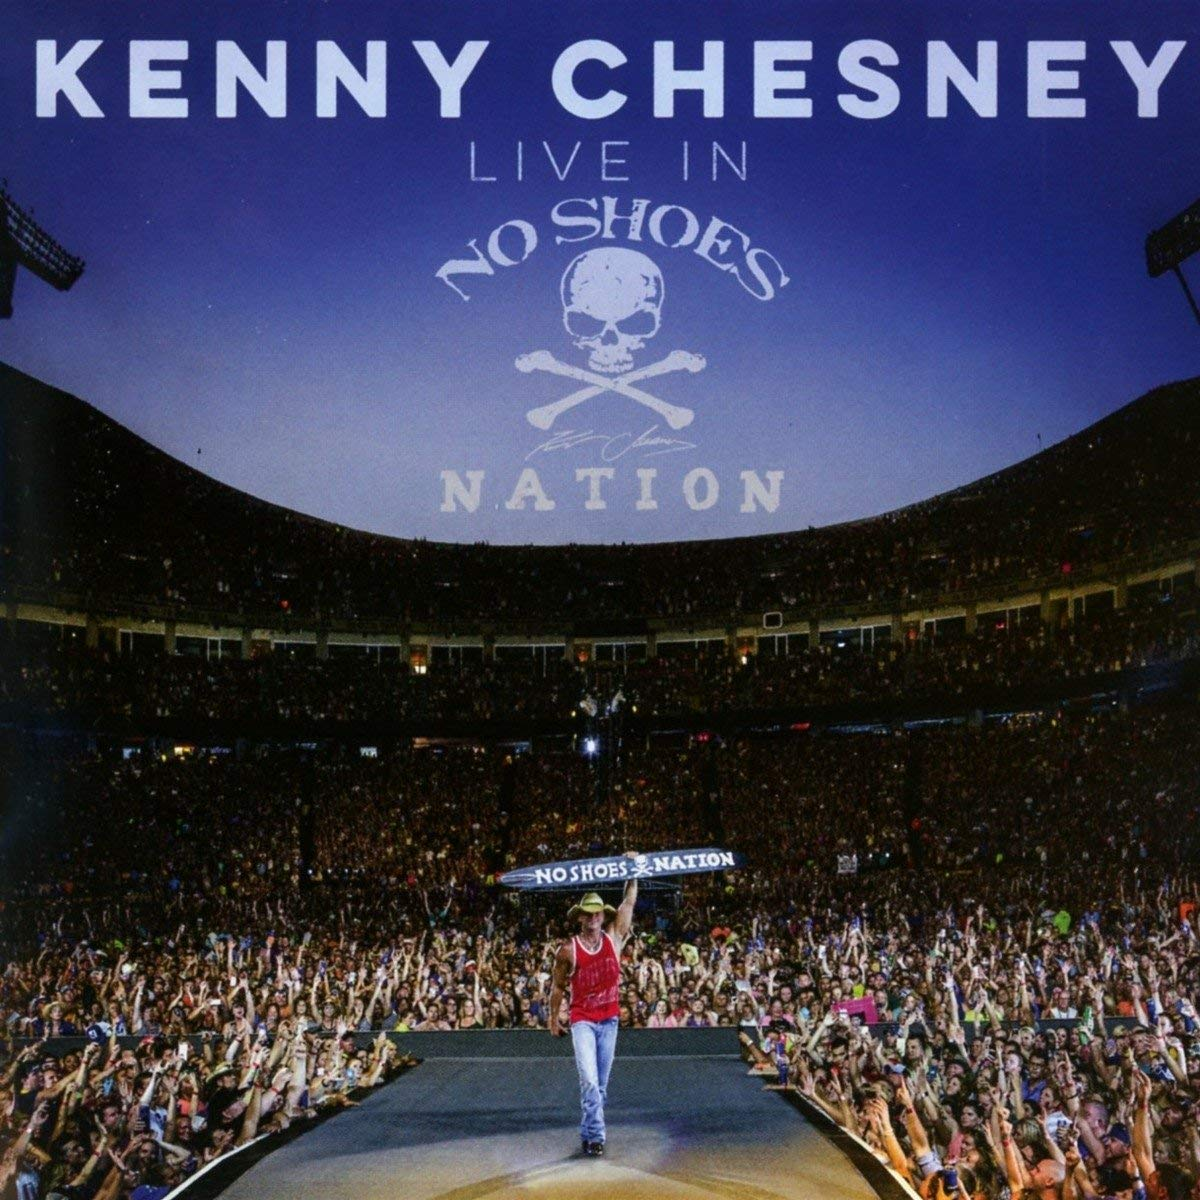 Kenny Chesney - Live In No Shoes Nation.jpg